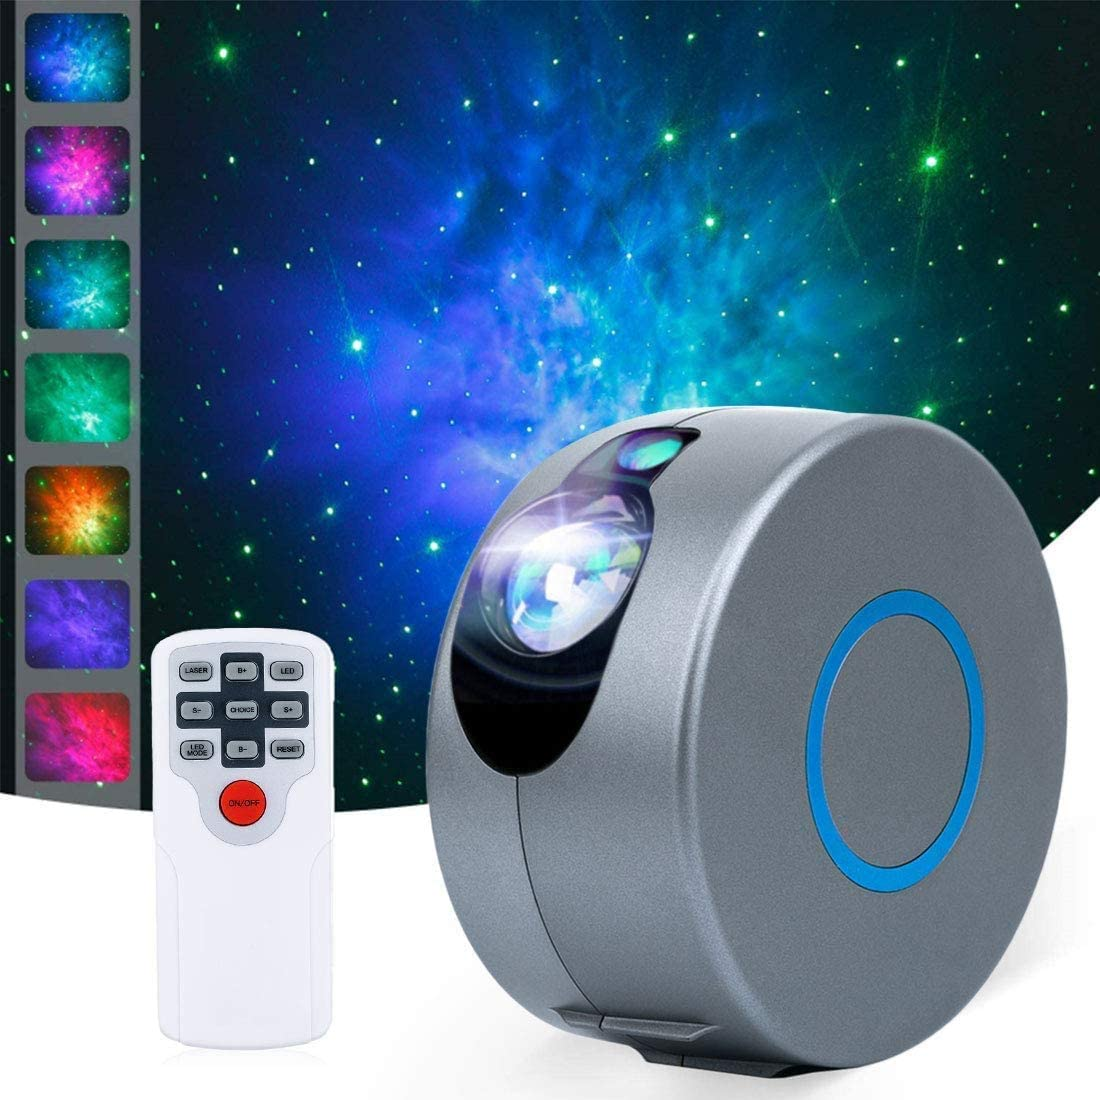 2021 Star Projector Galaxy Projector, Nebula Cloud Night Light for Bedroom, LED Space Sky Light Lamp, Cool Room Decor, Starry Night, 8 Lighting Effects for Home, Party or Mood Lighting Ambiance